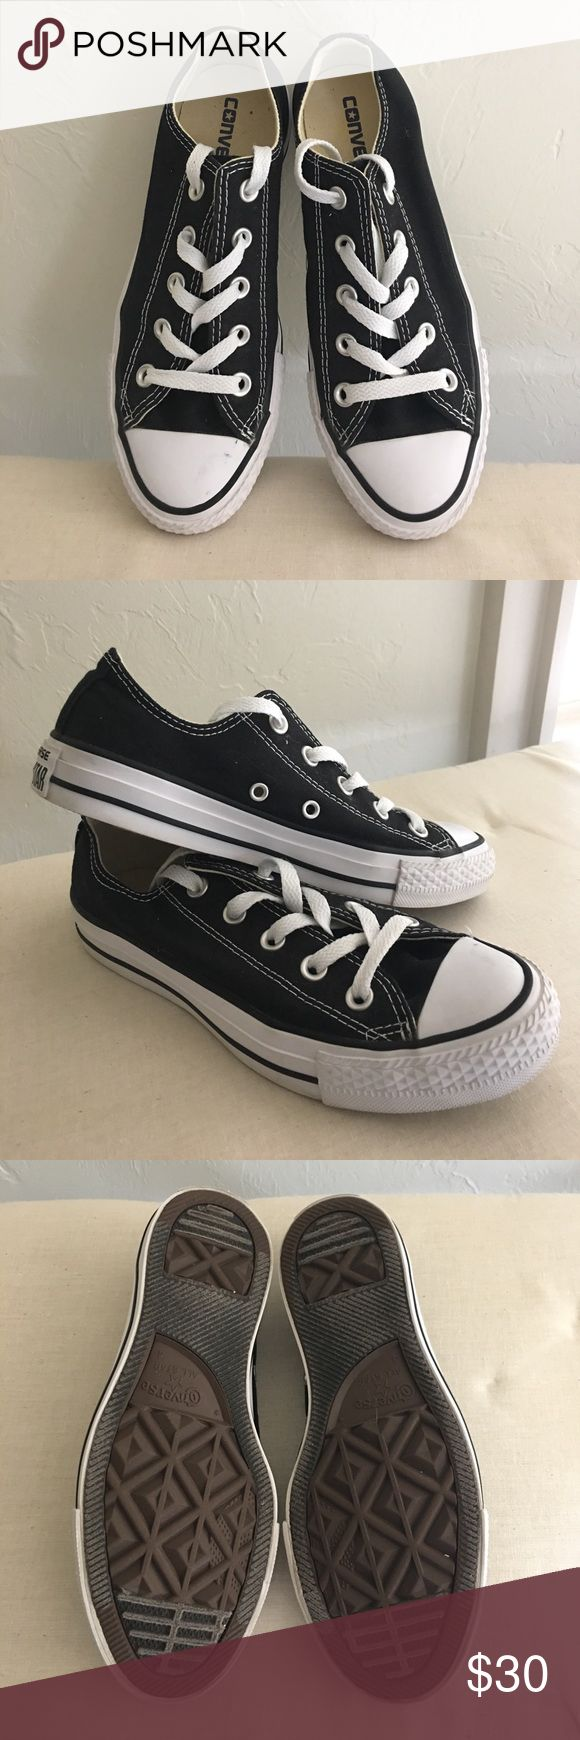 🖤Low top black Converse shoes!🖤 Women's Size 6 black converse. Great condition!  I'm a 6.5-7 normally so they run big. Converse Shoes Sneakers